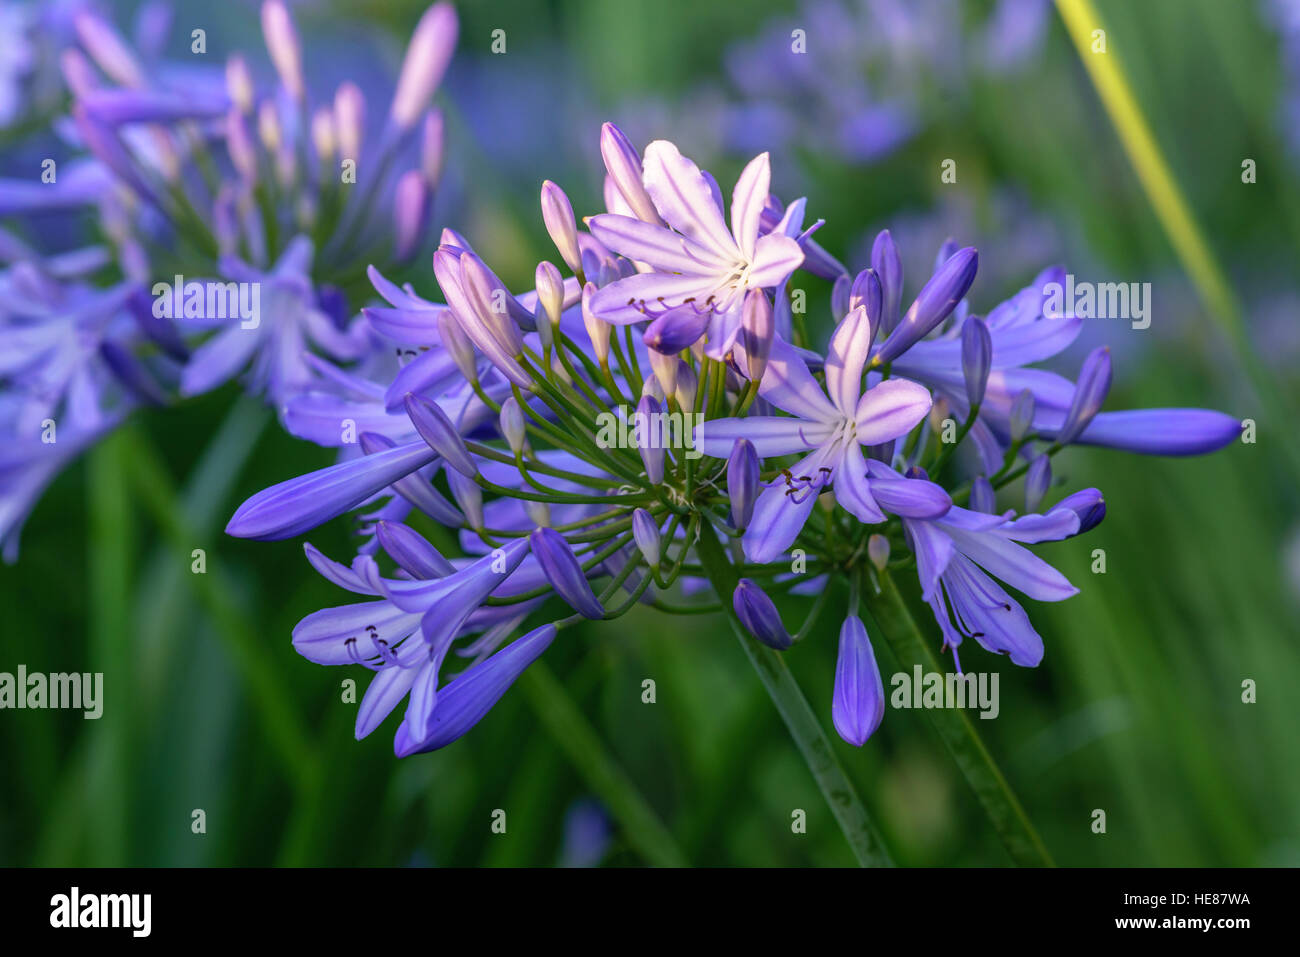 African blue lily agapanthus africanus flowers against a garden african blue lily agapanthus africanus flowers against a garden background white and purple flowers izmirmasajfo Gallery